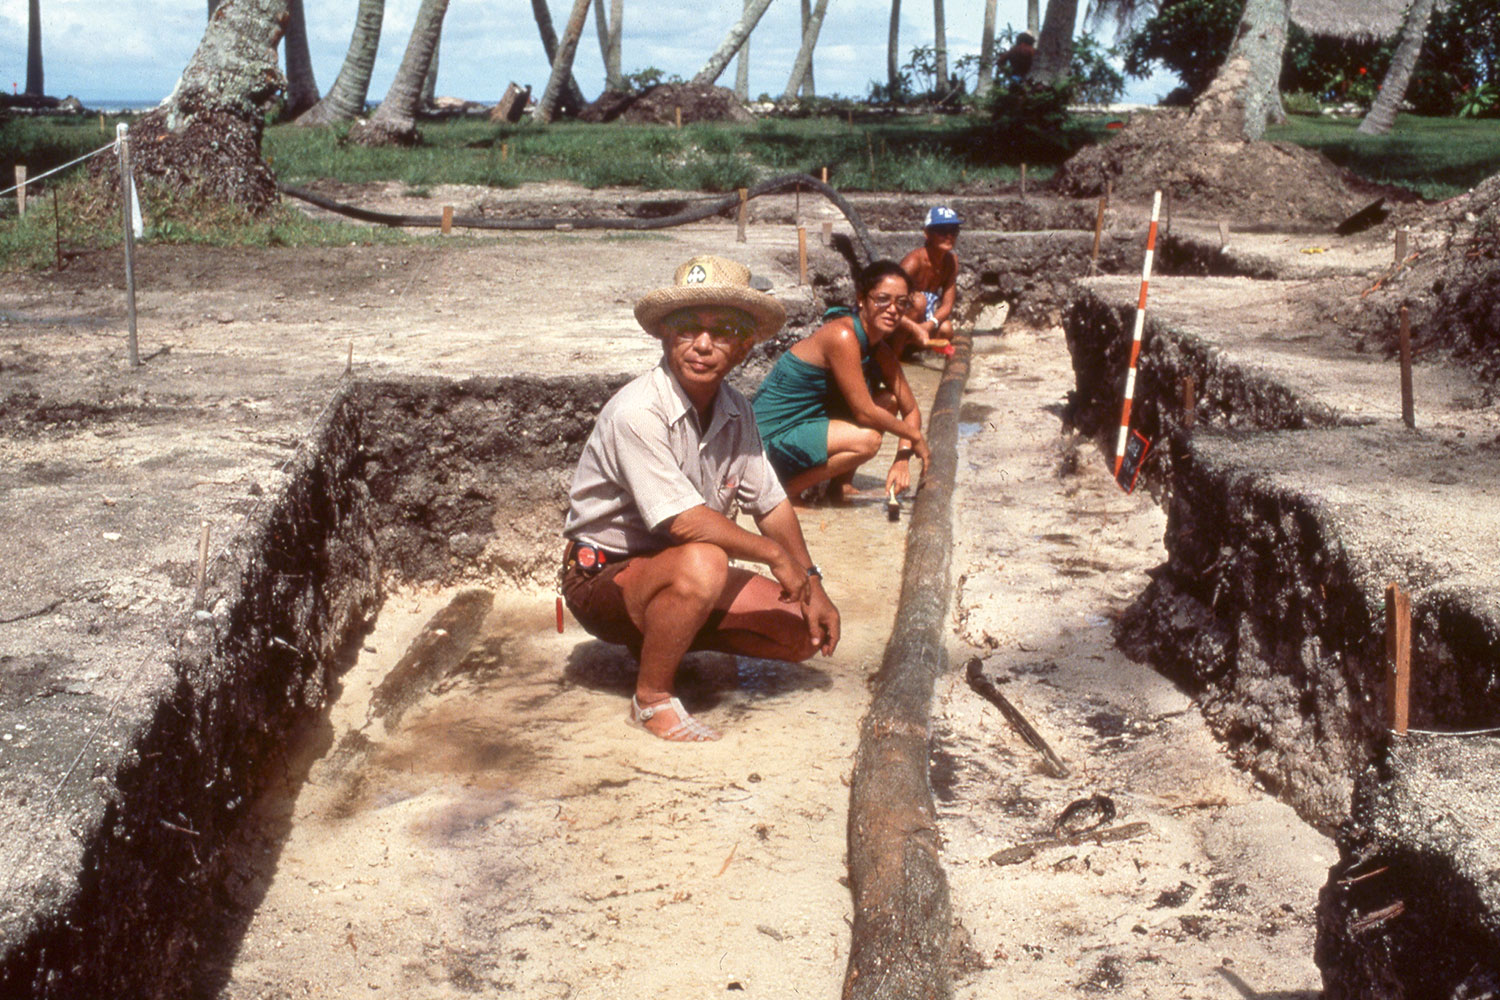 Aged color photo of people at an excavation site.